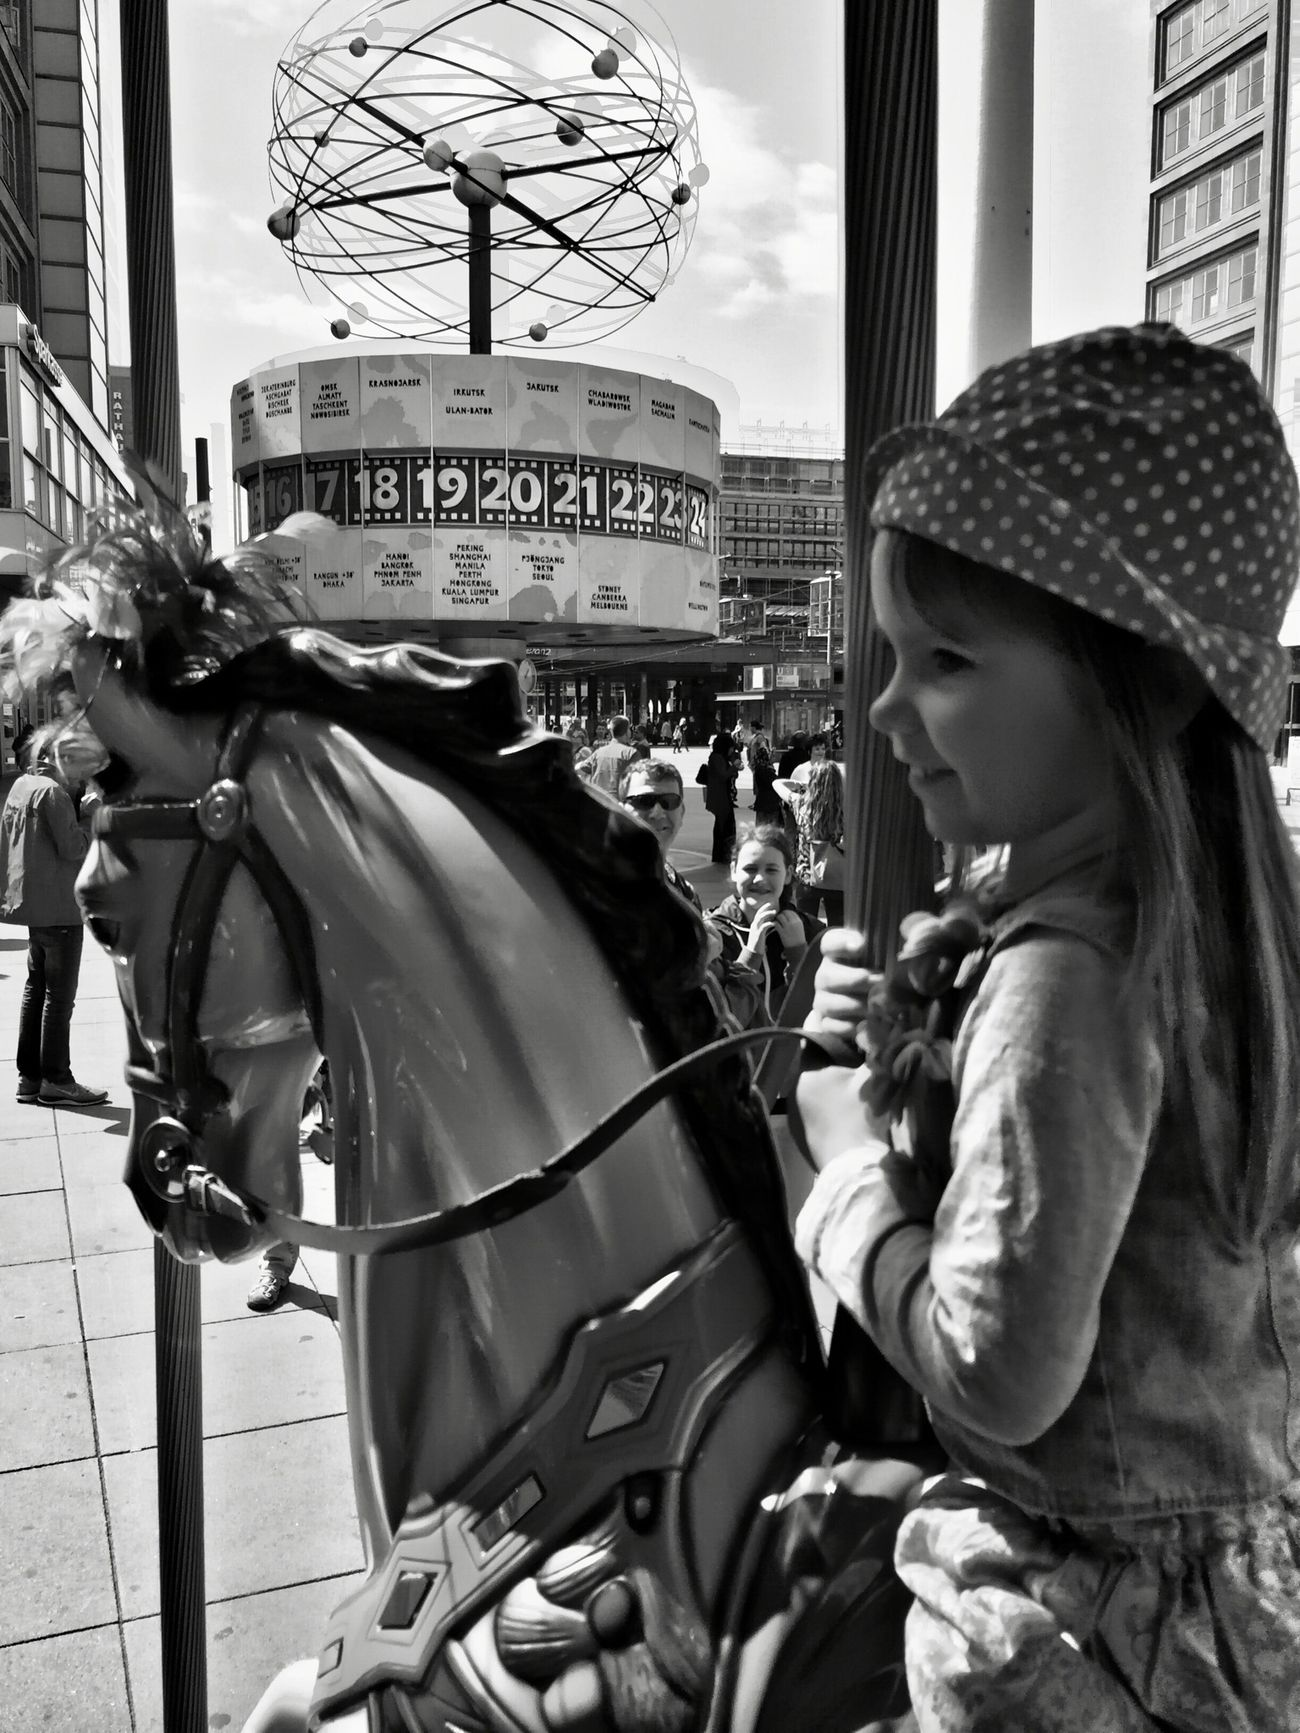 Finding The Next Vivian Maier Bw_collection EyeEm Best Shots Good Things Come In Small Packages With Lightcase